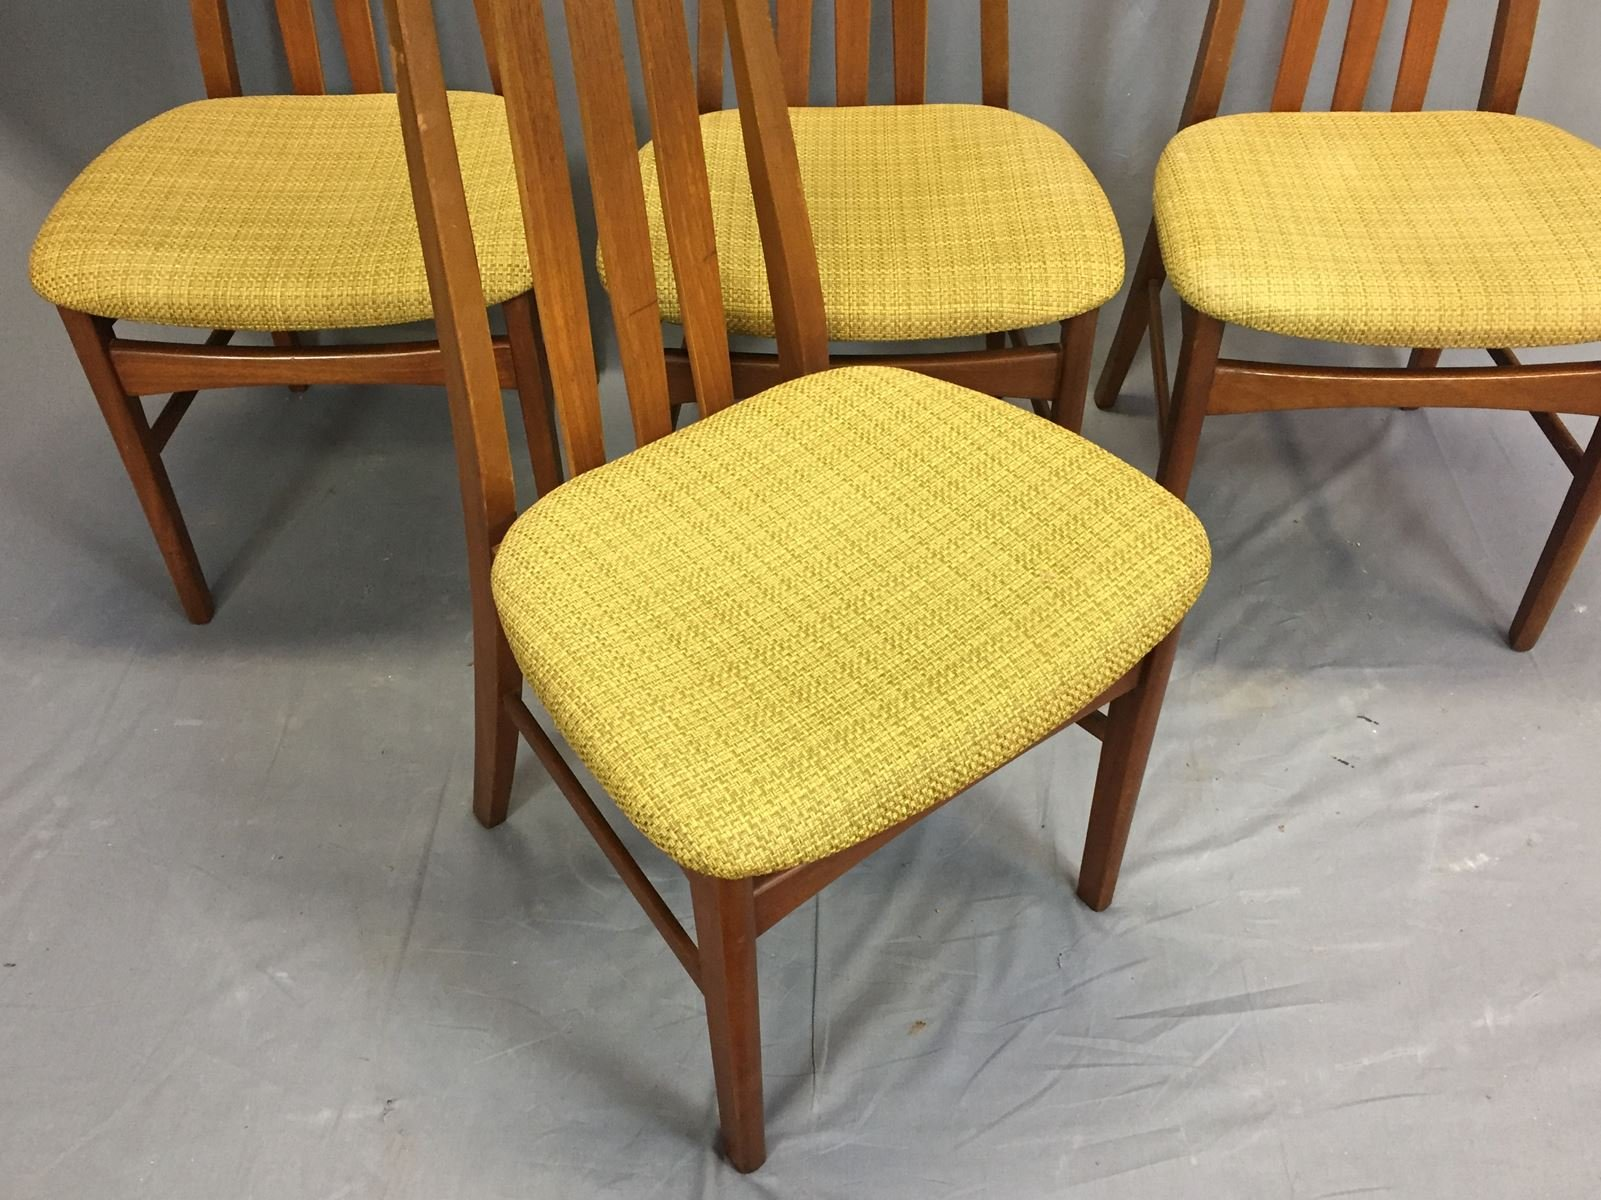 Teak Chairs 1970s Set Of 4 For Sale At Pamono